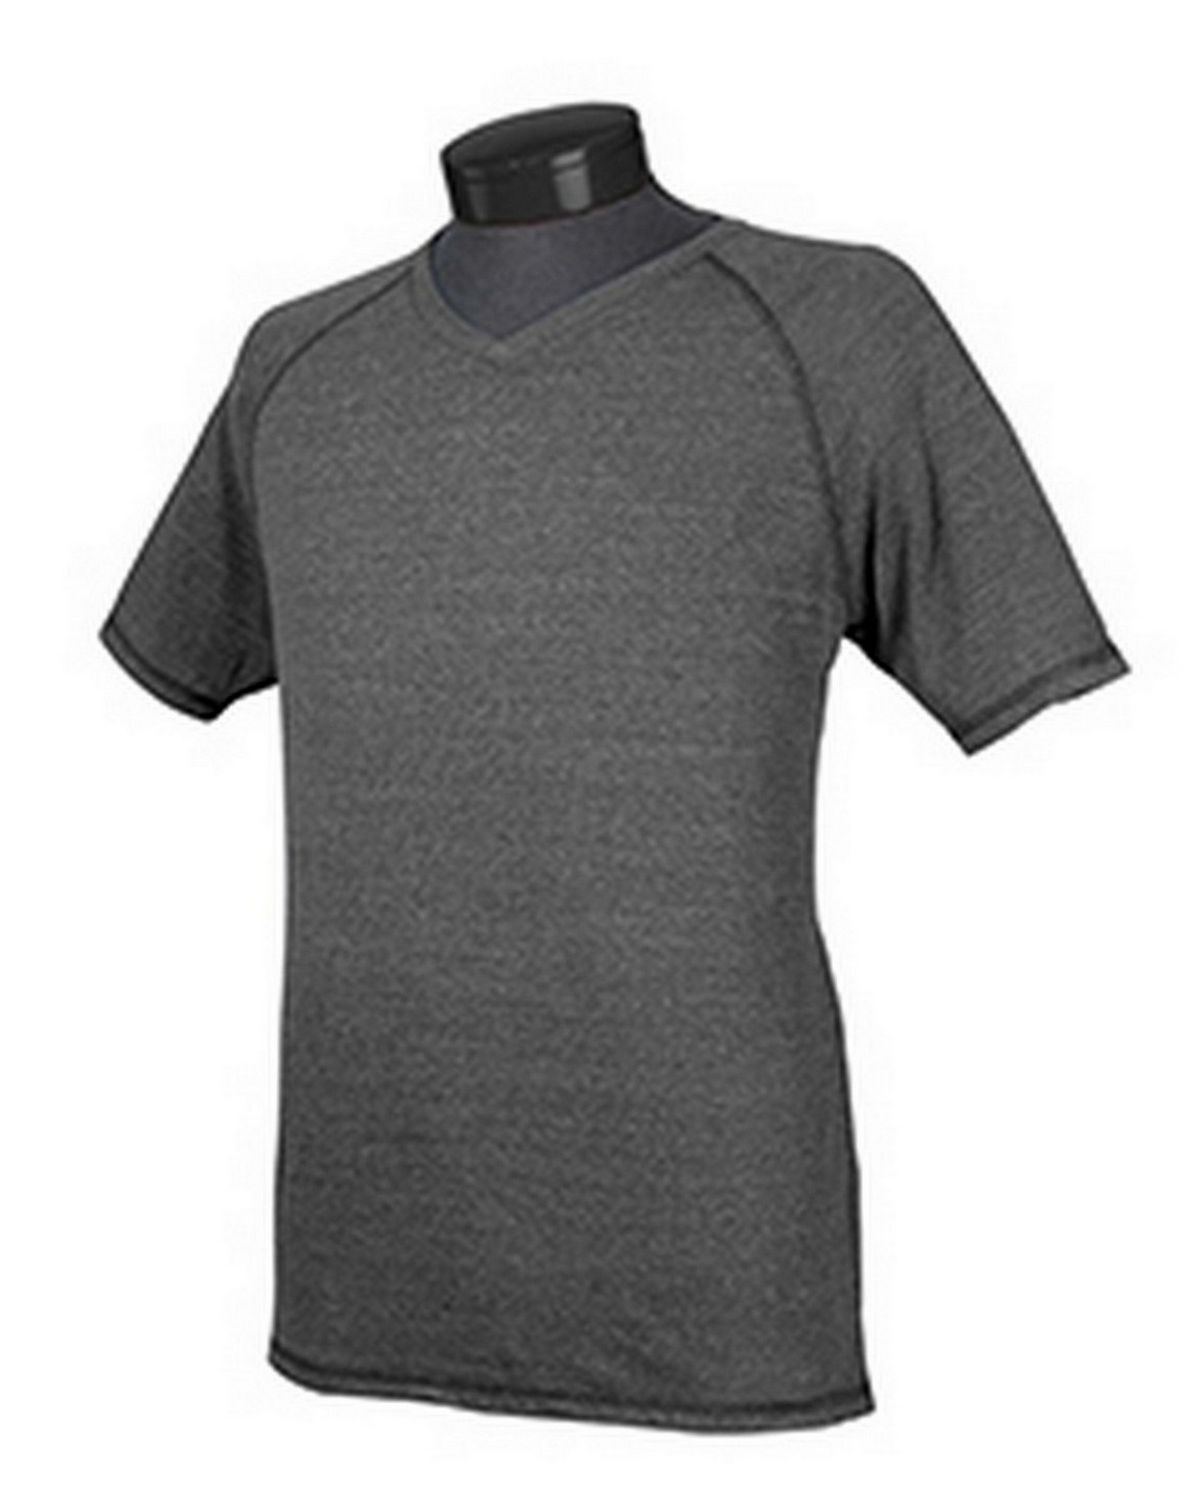 All Sport M1105 Performance Triblend V-Neck T-Shirt - Charcoal Heather Timberland - XL M1105